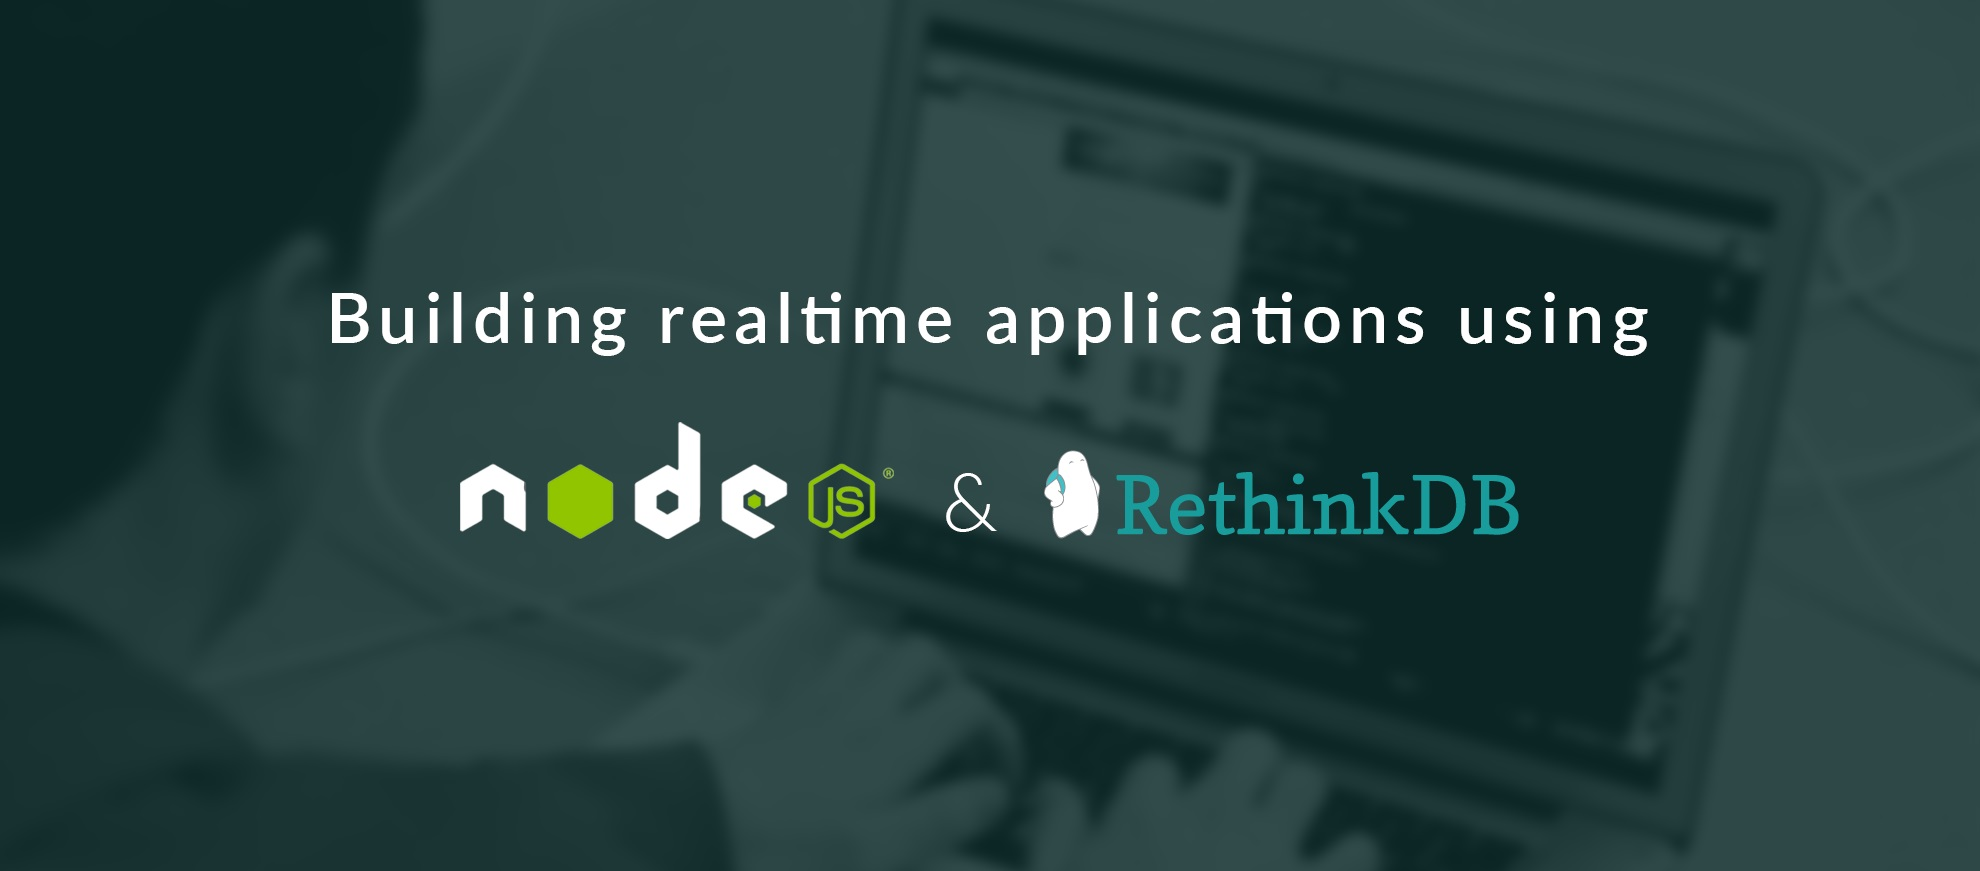 How to Build Real-time Applications Using Node js and